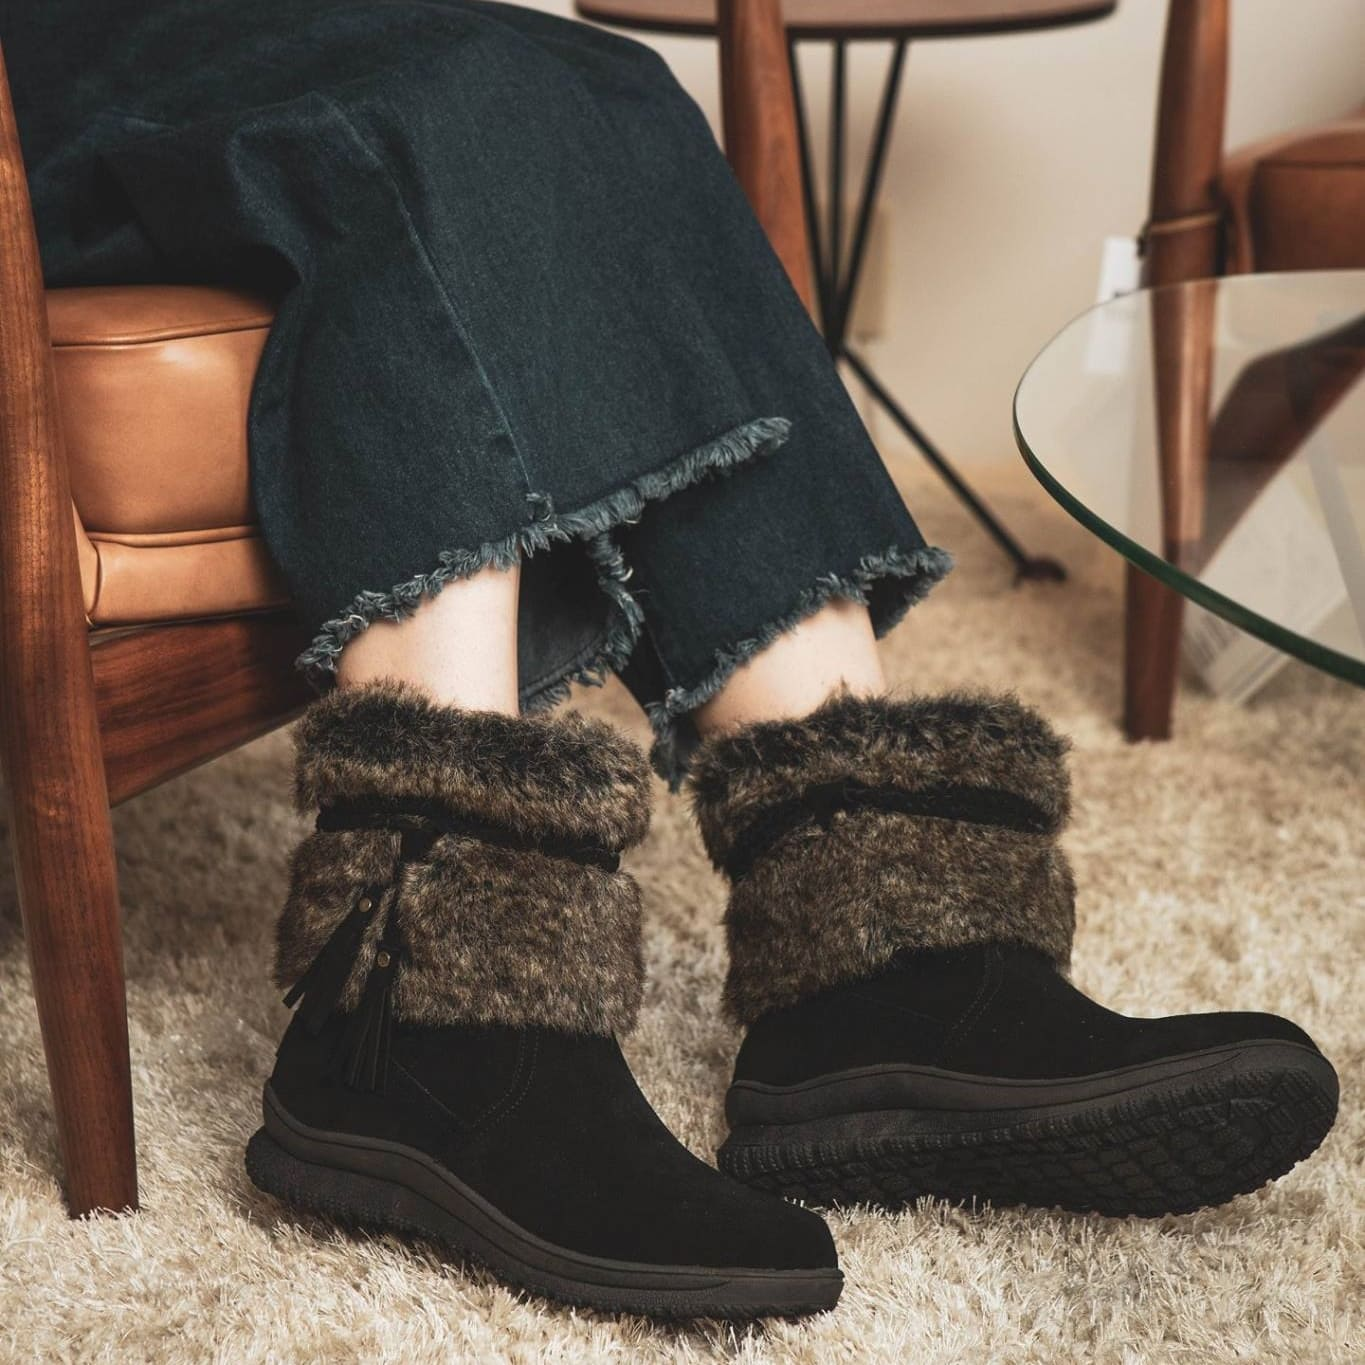 Tassel details and faux-fur trim add cozy-chic touches to this water-resistant pull-on boot